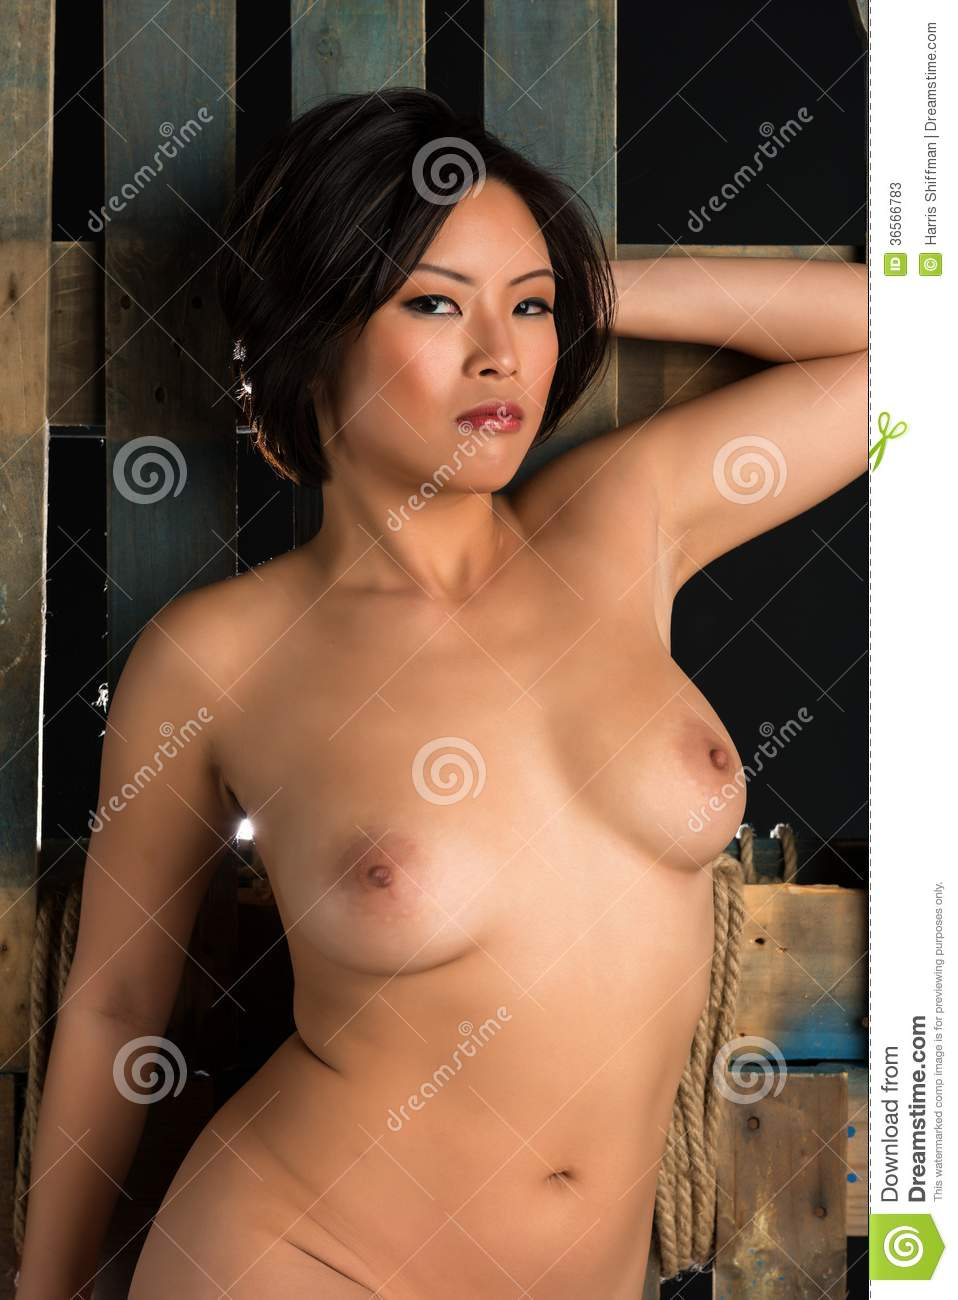 chinese naked women thumbs